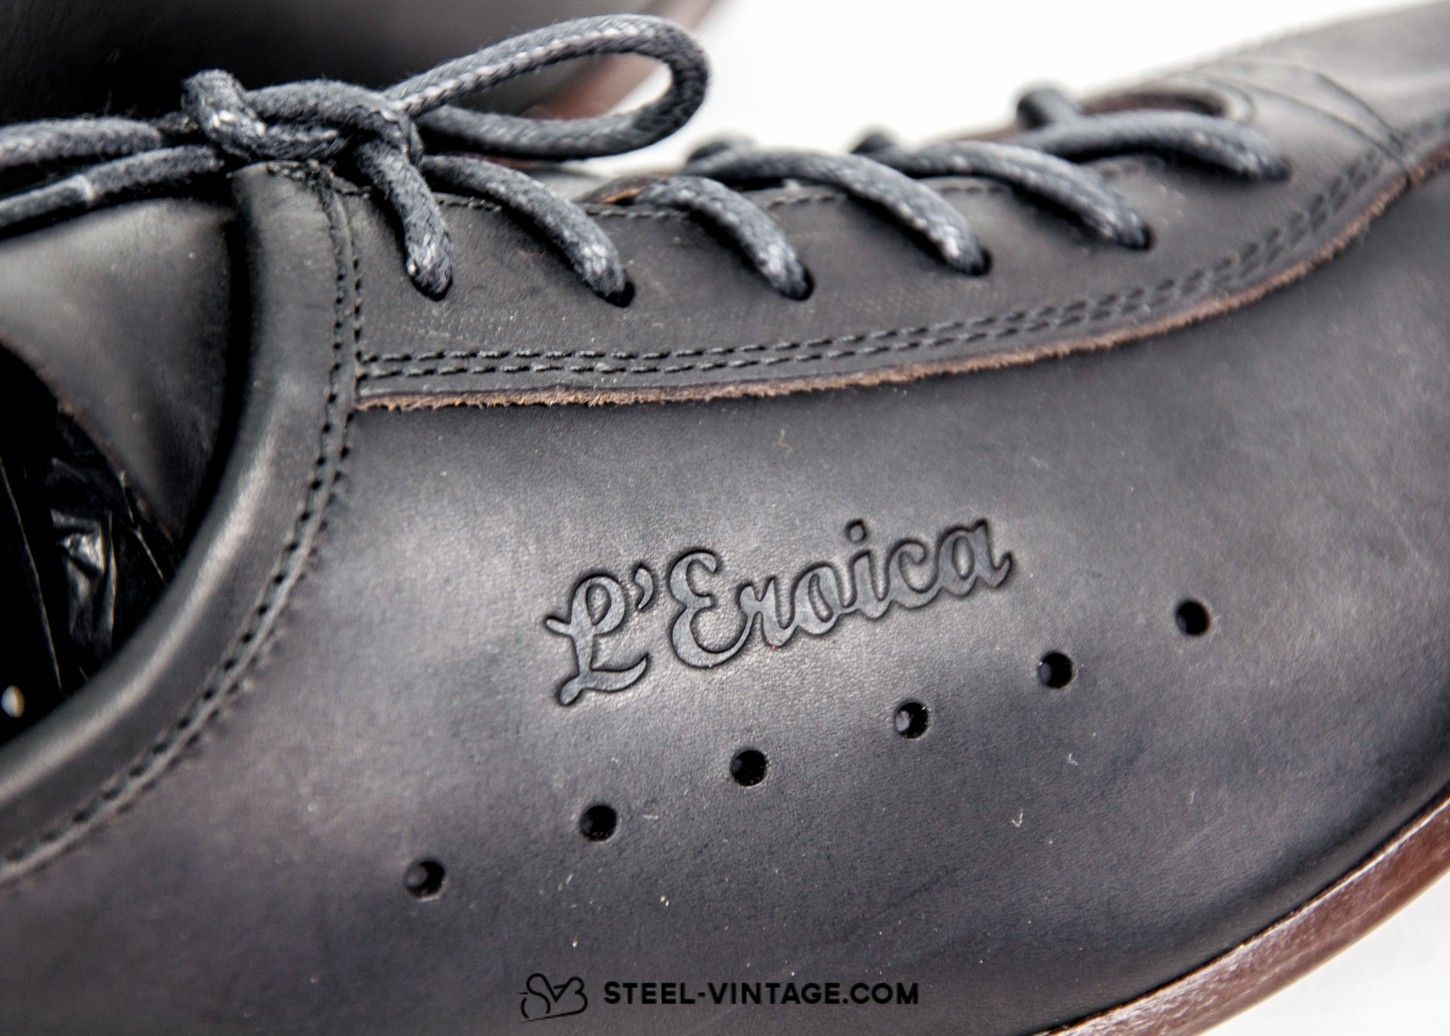 Steel Vintage Bikes L Eroica Cycling Shoes Cycle Cloathing